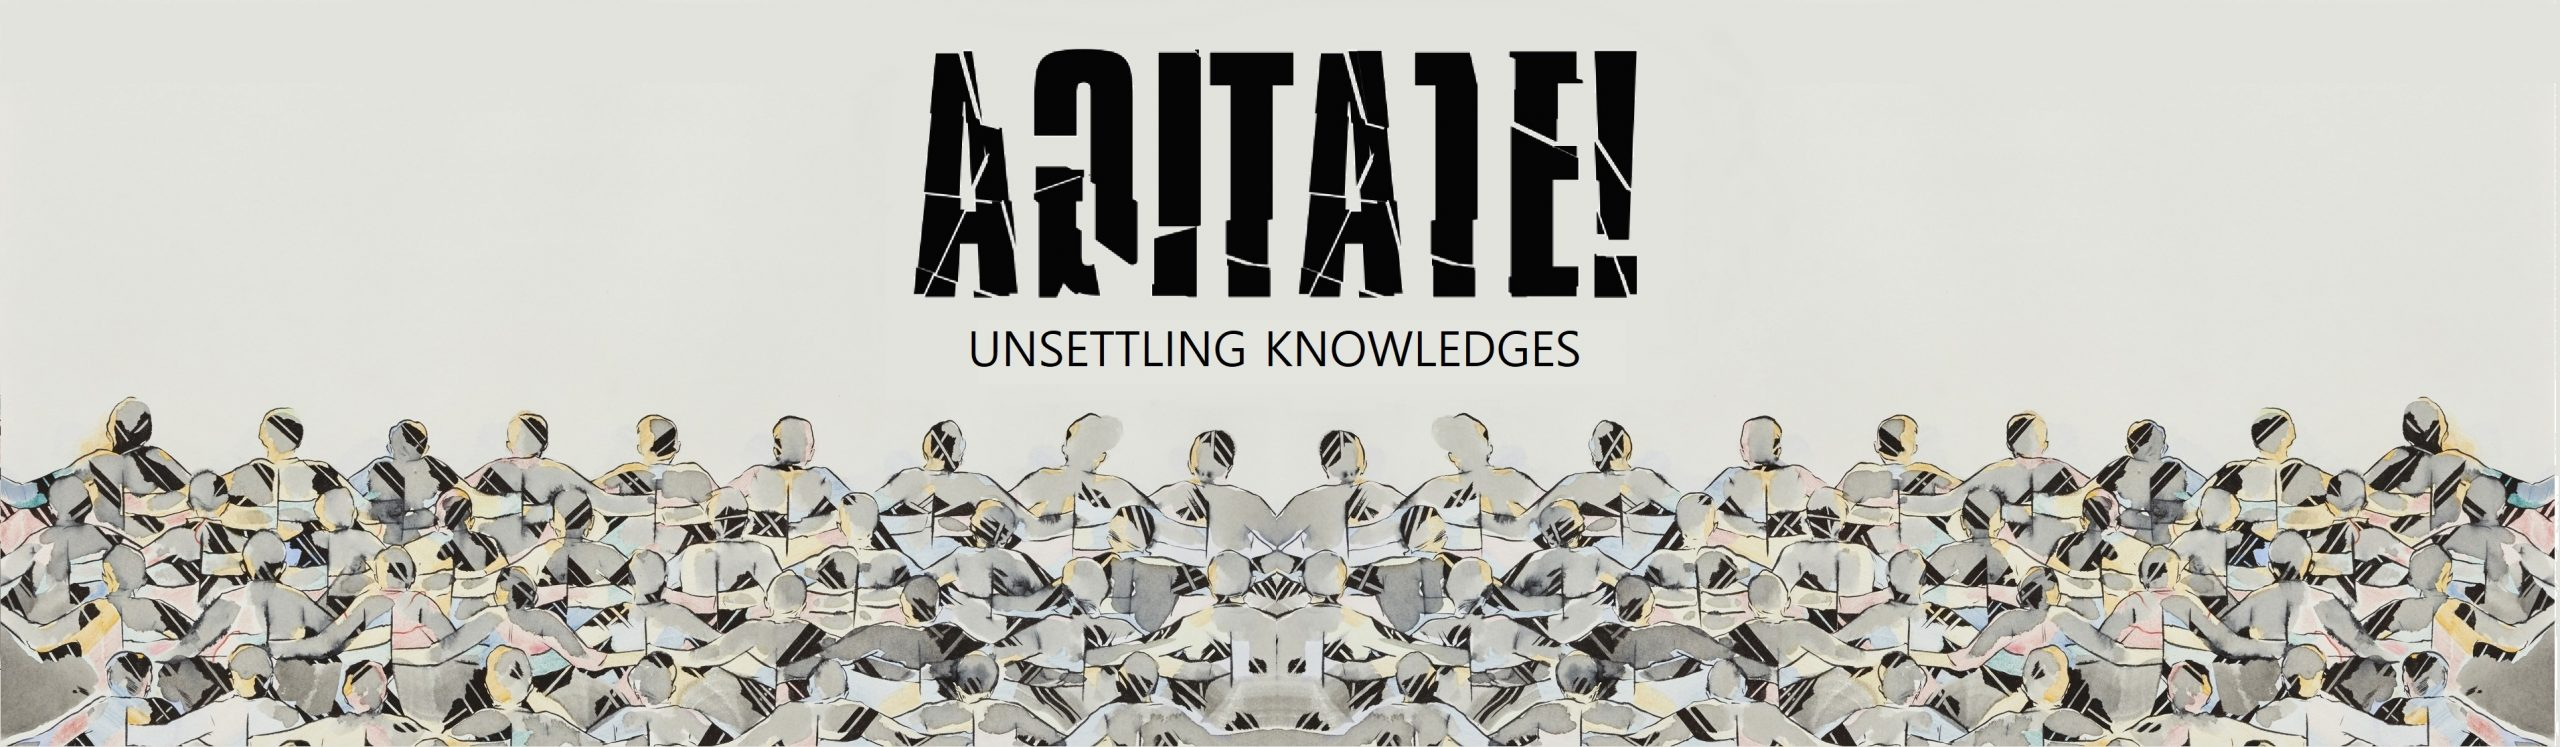 AGITATE! - Unsettling Knowledges